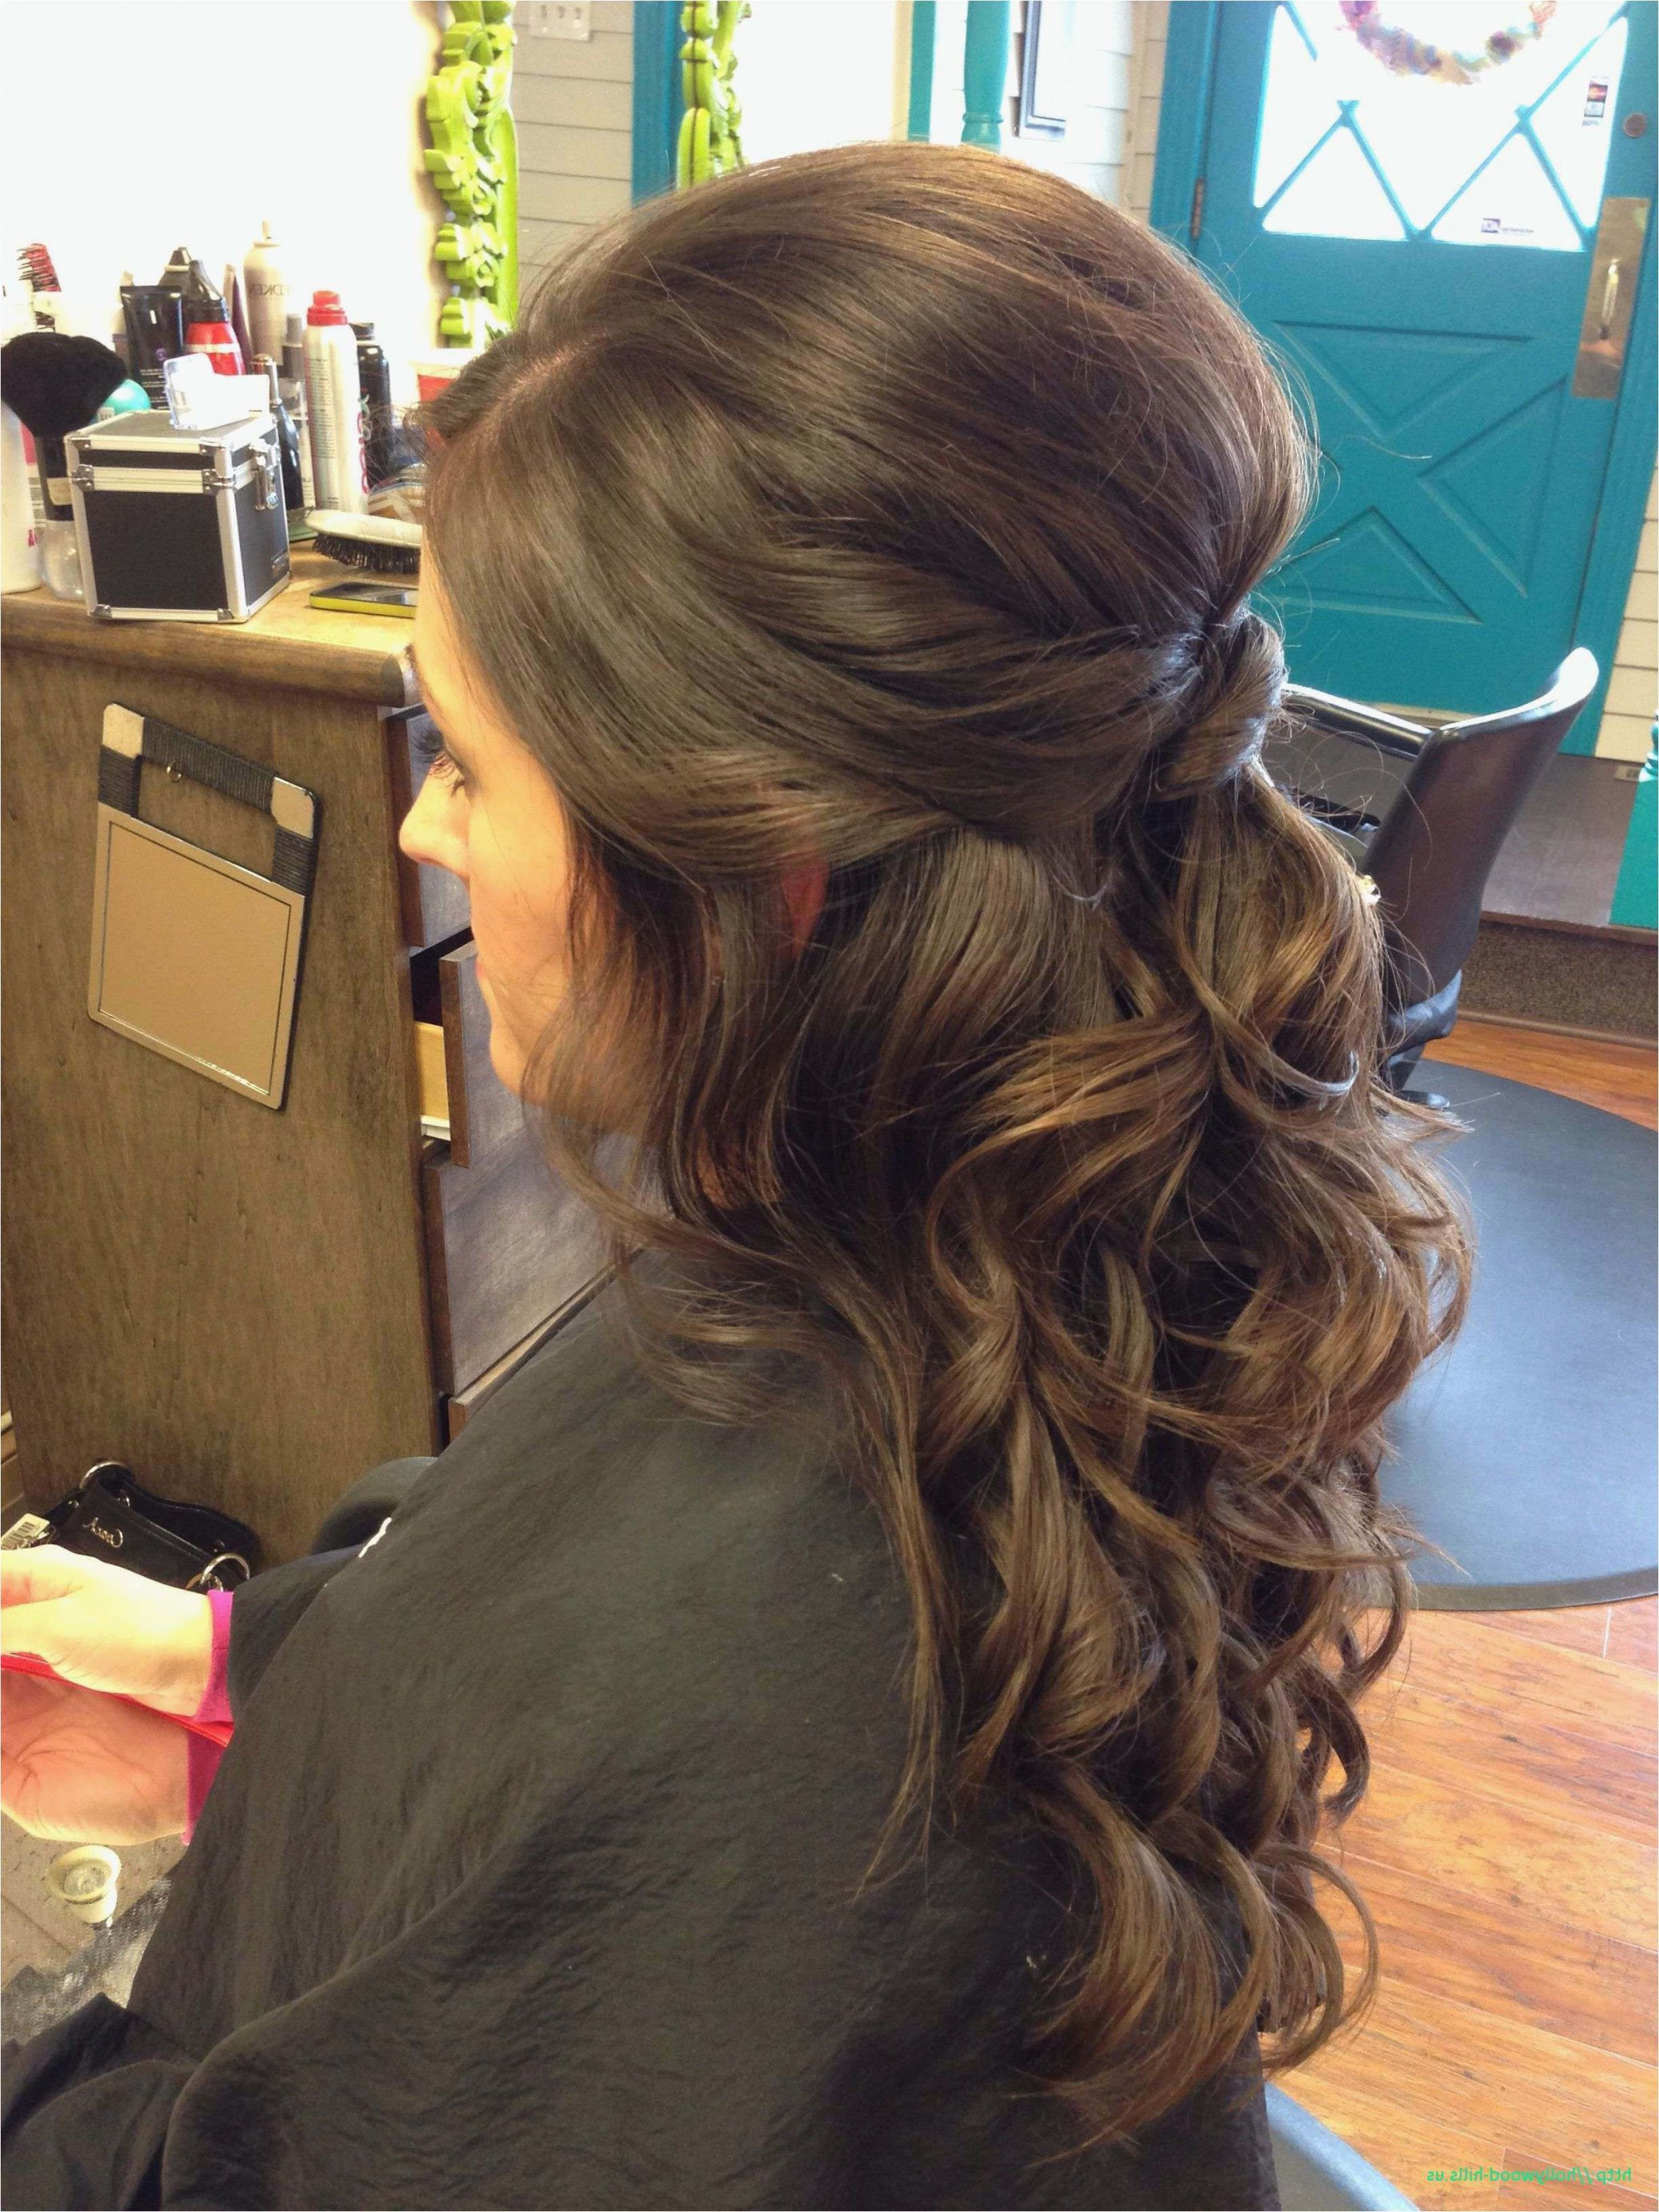 Recent Curled Half Up Hairstyles In 23 Curly Hairstyles For Wedding Half Up (View 10 of 20)